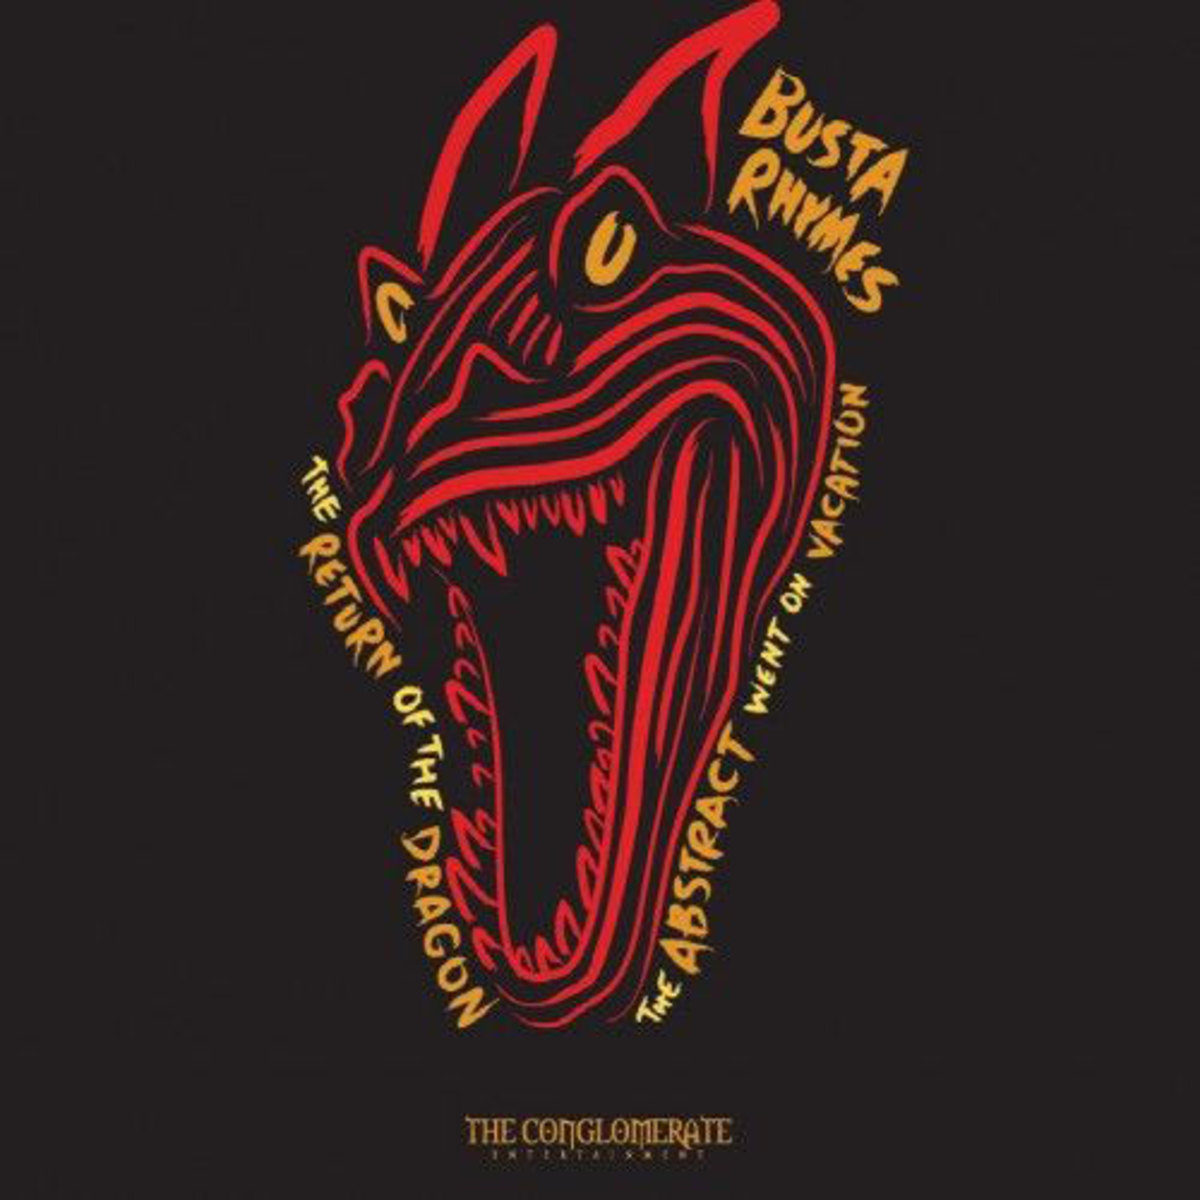 busta-rhymes-return-of-the-dragon.jpg